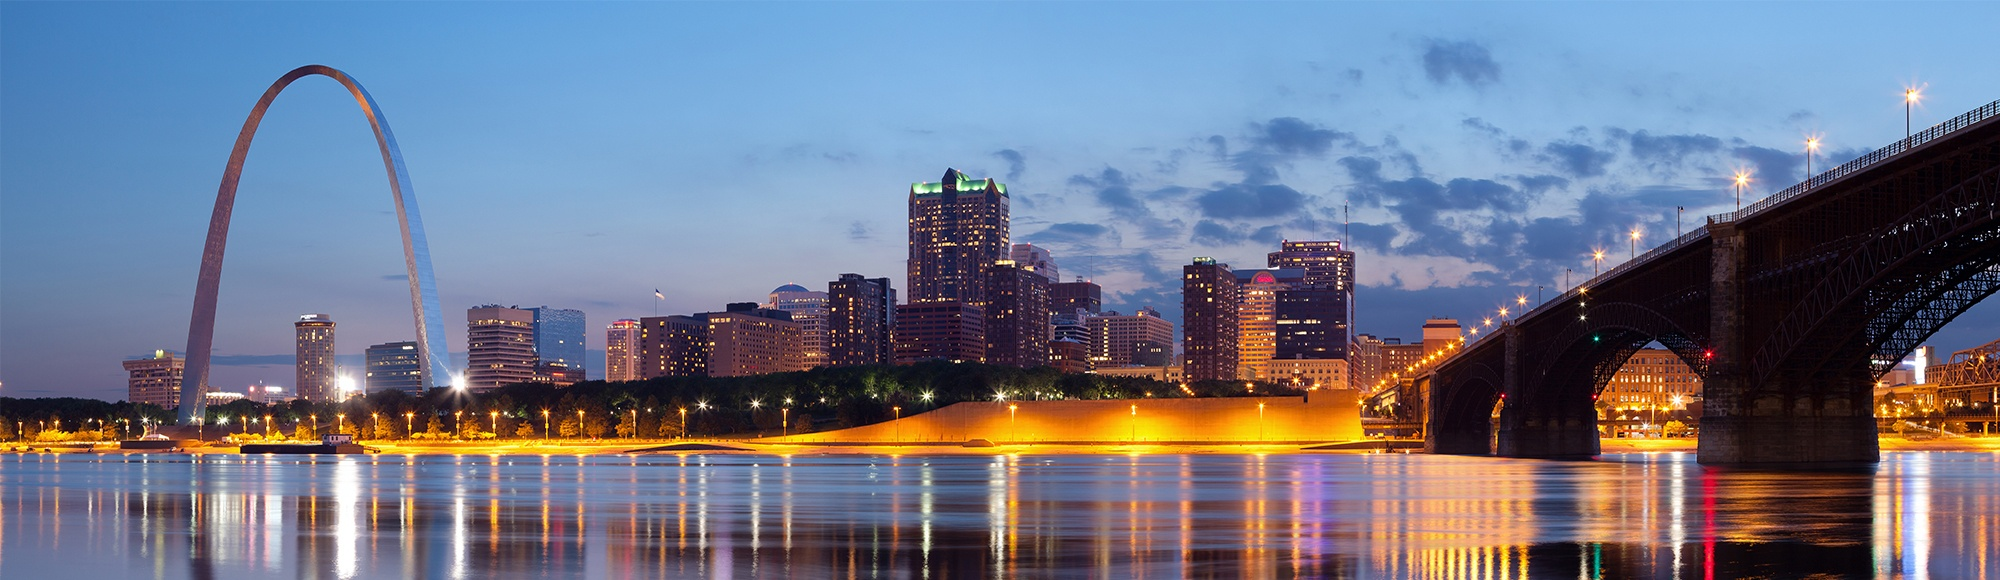 St Louis Skyline - Resized.jpg